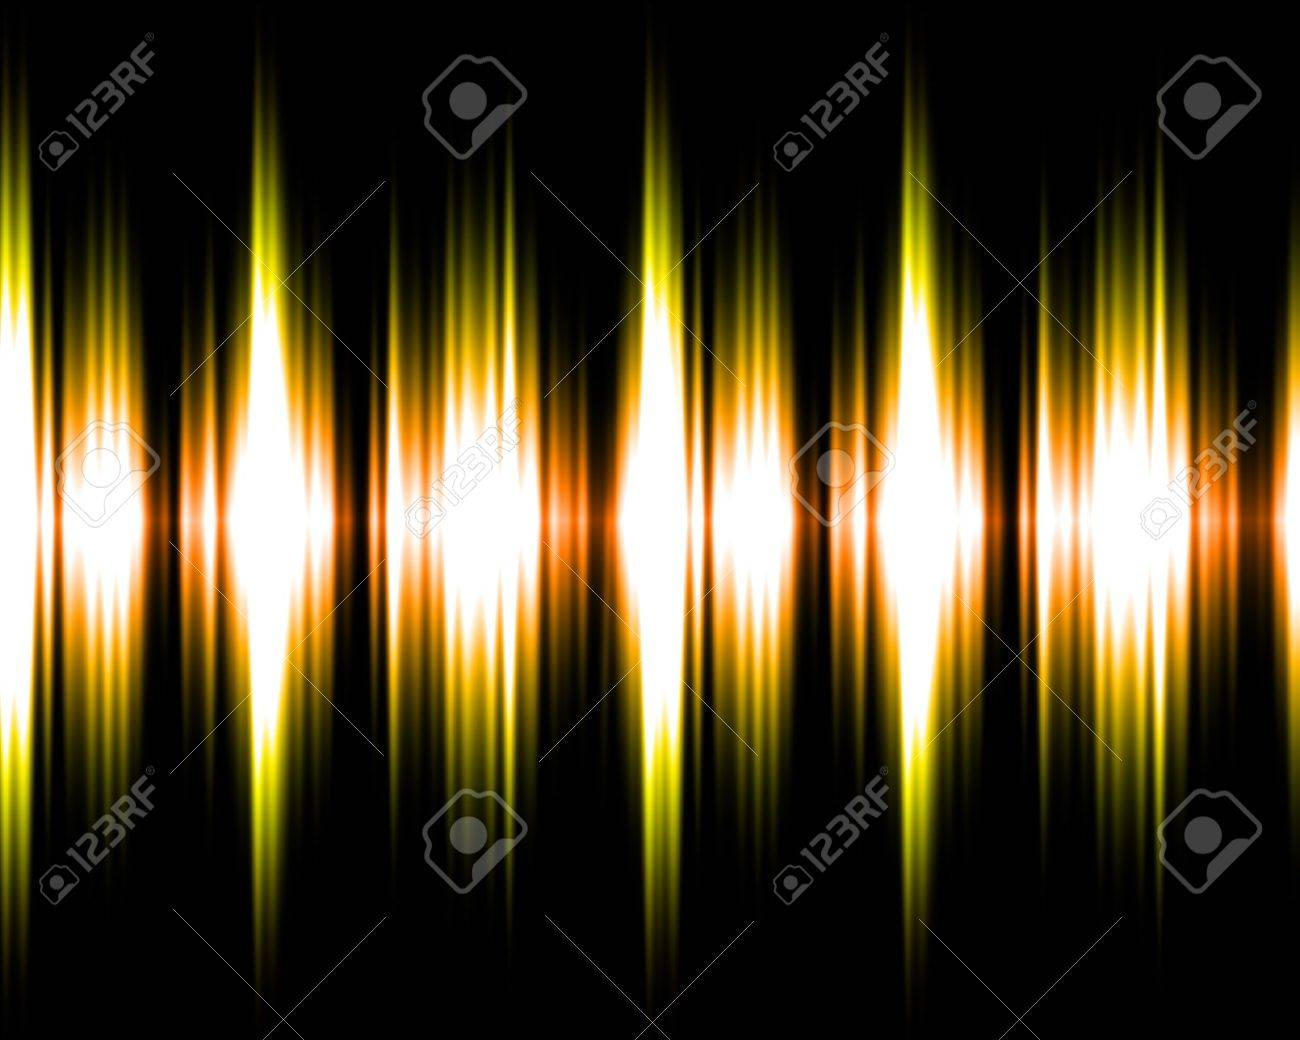 Gold and yellow audio soundwaves illustration on black background. Stock Illustration - 8307506